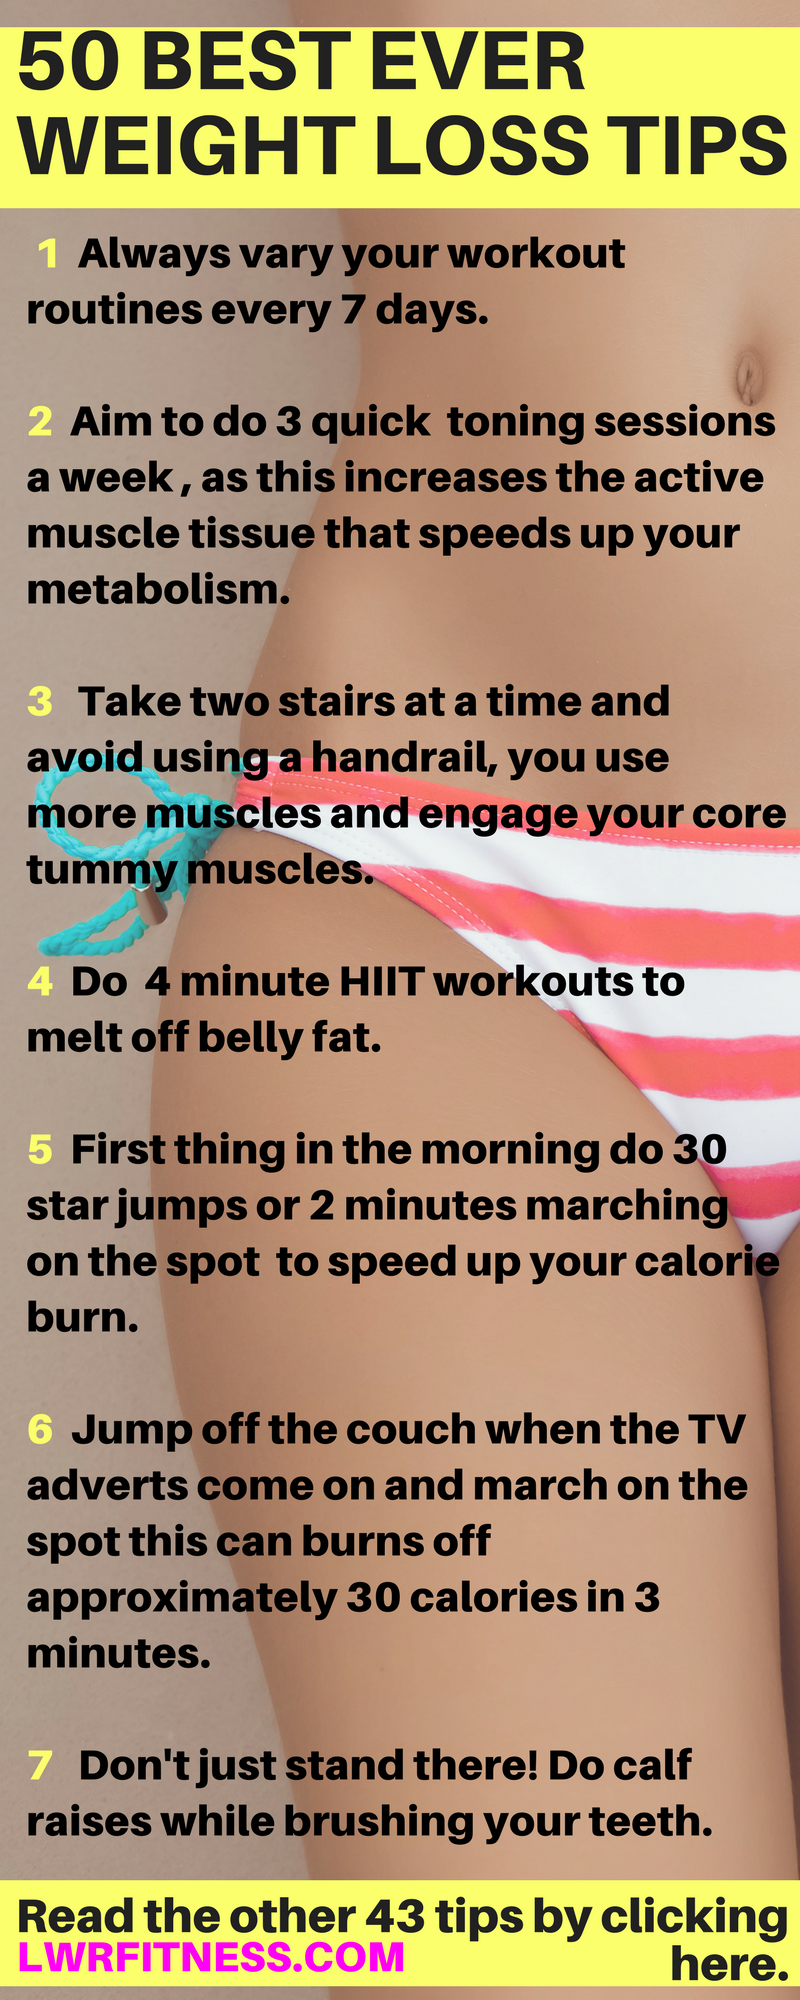 50 Healthy Ways to Lose Weight advise